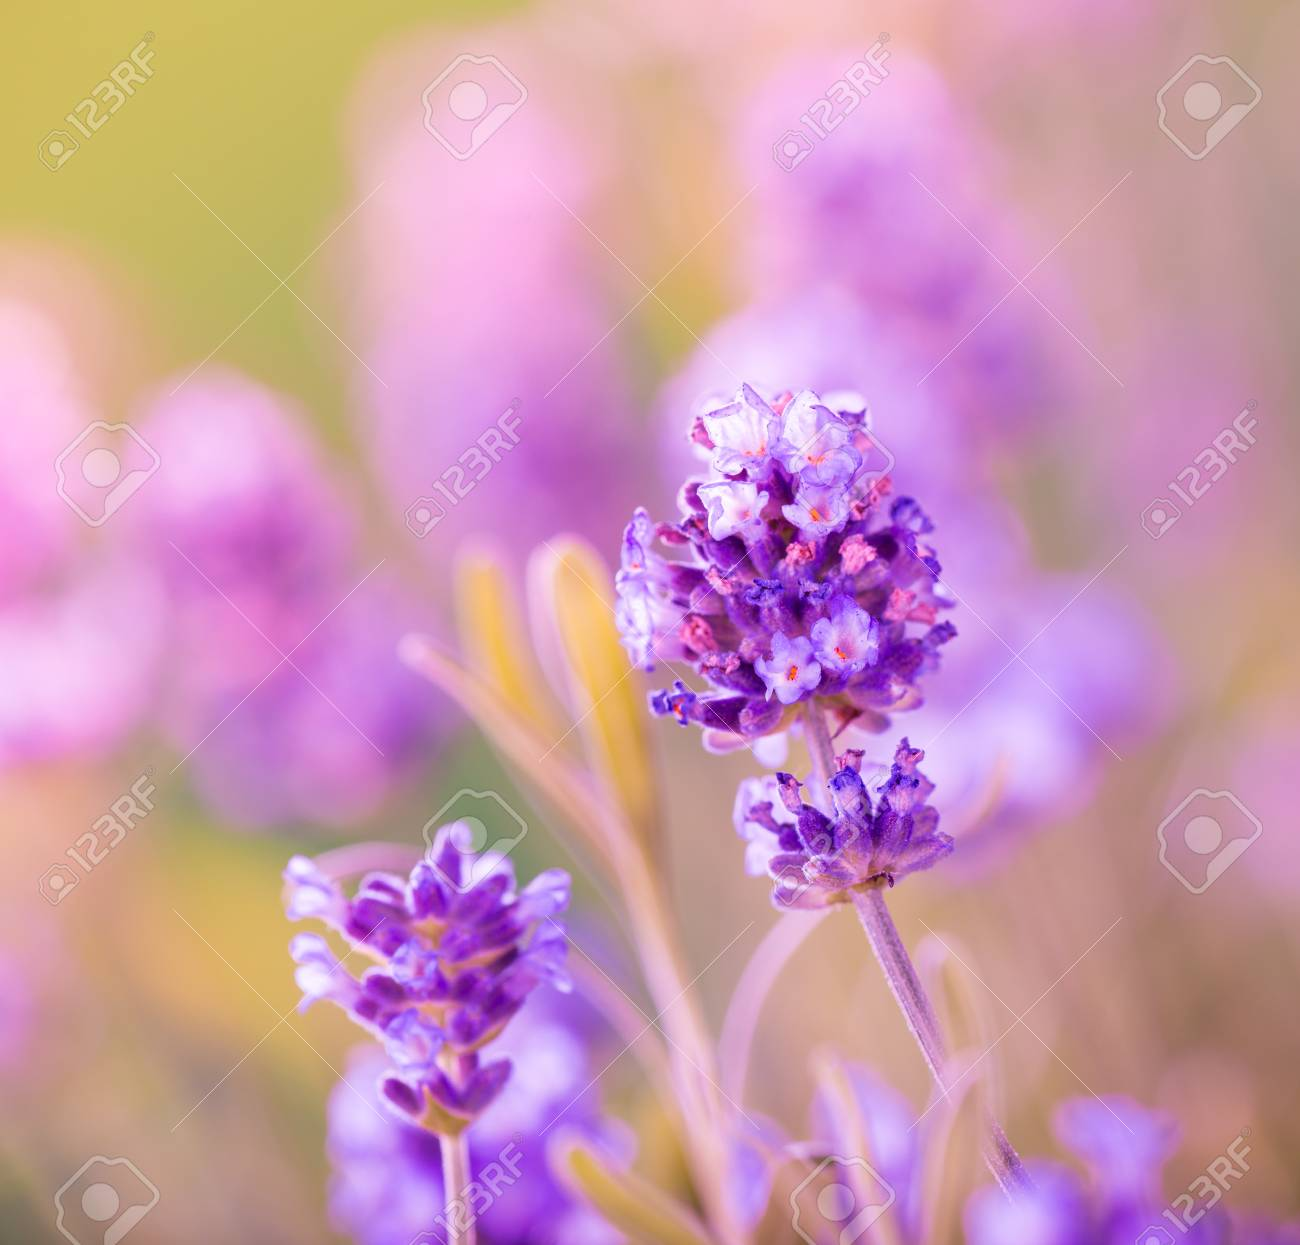 Beautiful lavender flowers background close up stock photo beautiful lavender flowers background close up stock photo 43157459 izmirmasajfo